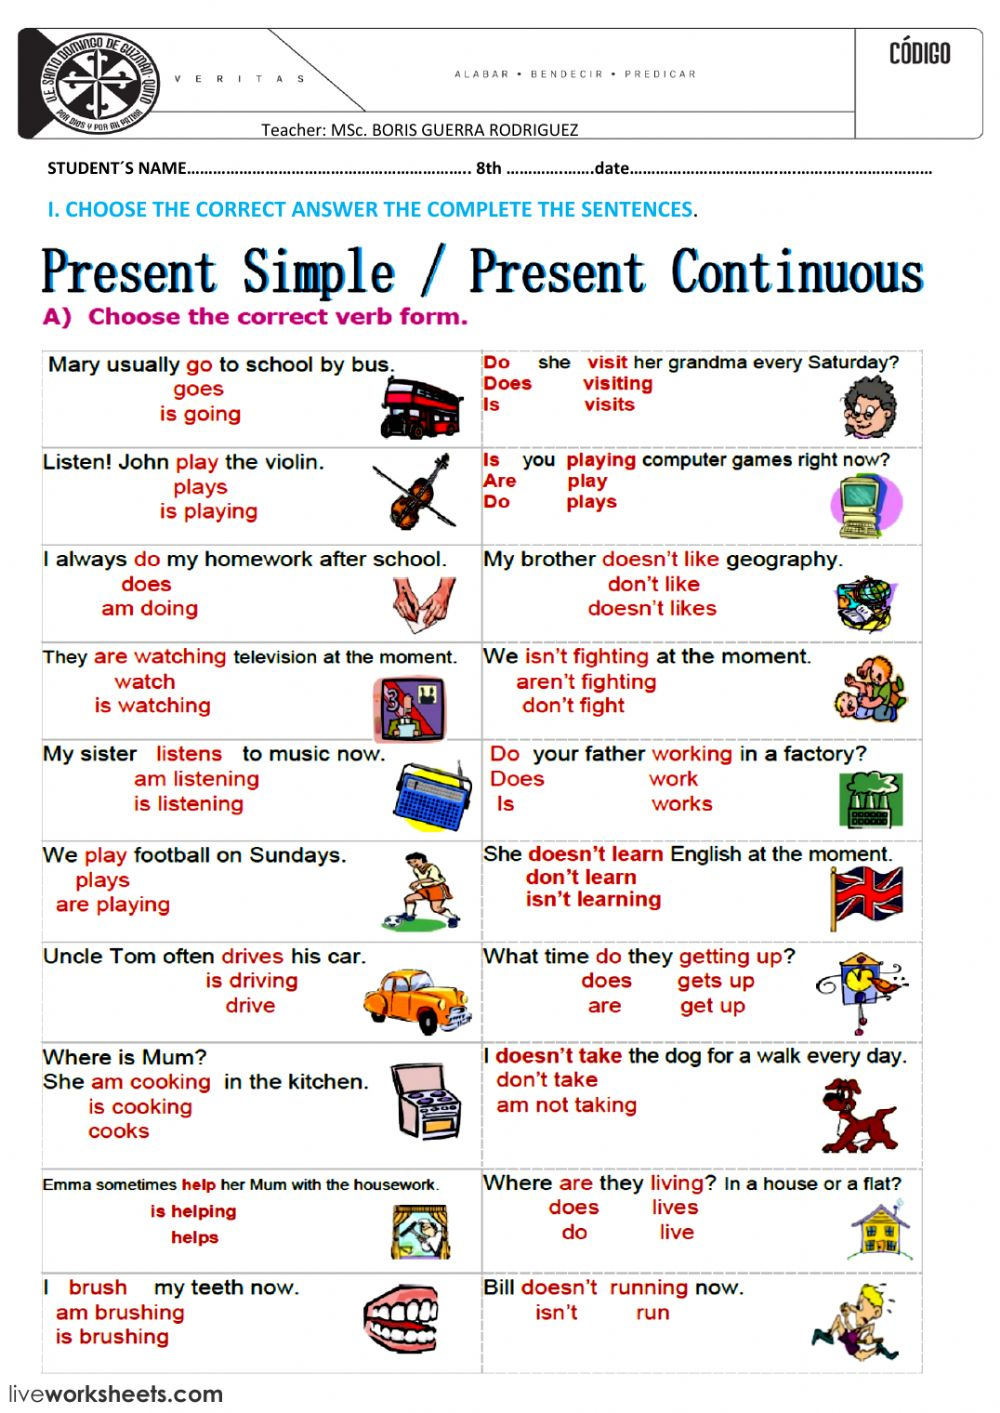 SIMPLE PRESENT AND CONTINUOS TENSE WORKSHEET 1 - Interactive ...